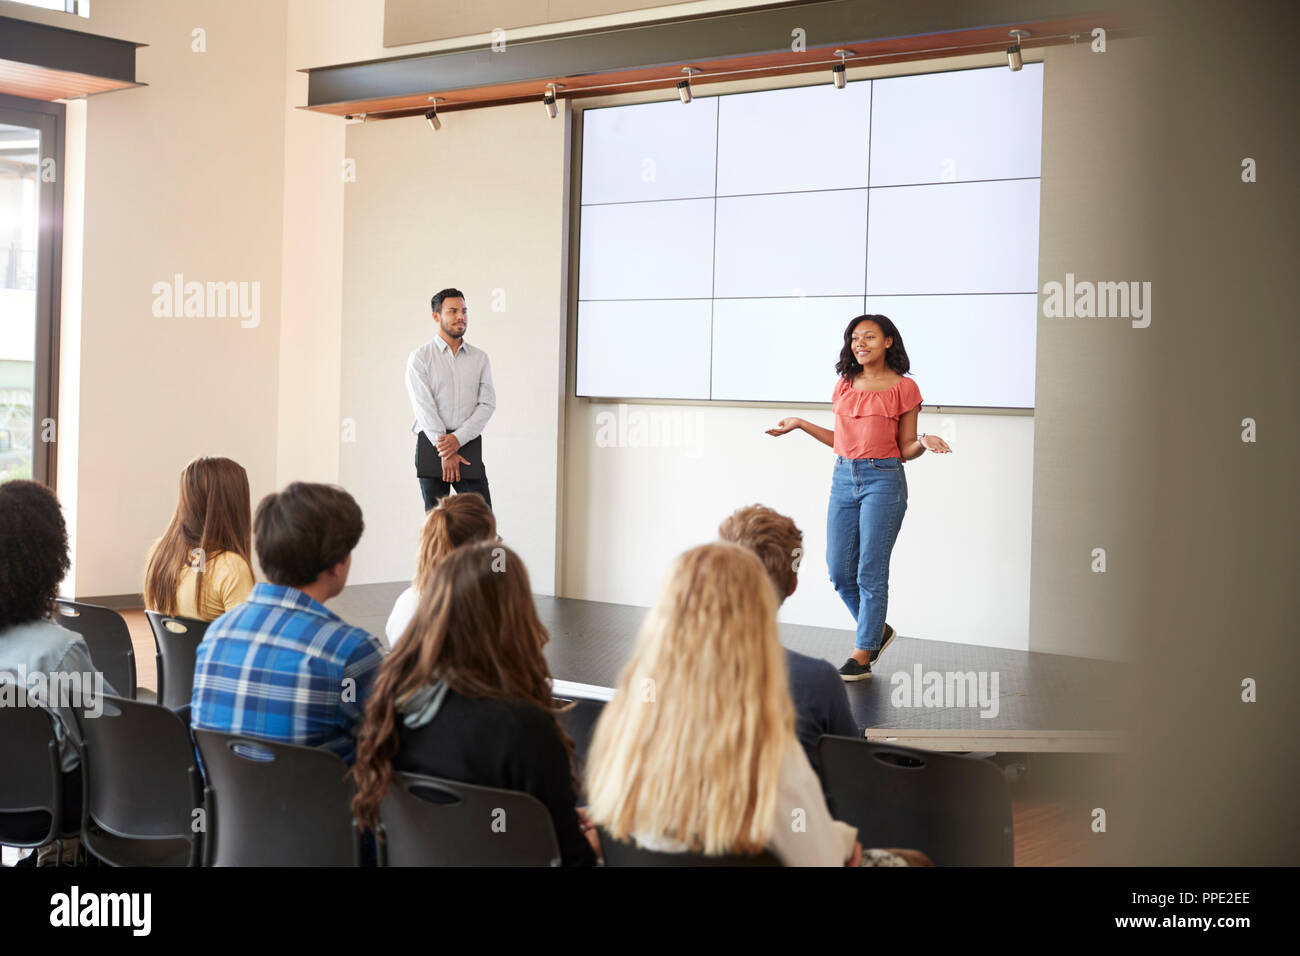 Female Student Giving Presentation To High School Class In Front Of Screen Stock Photo